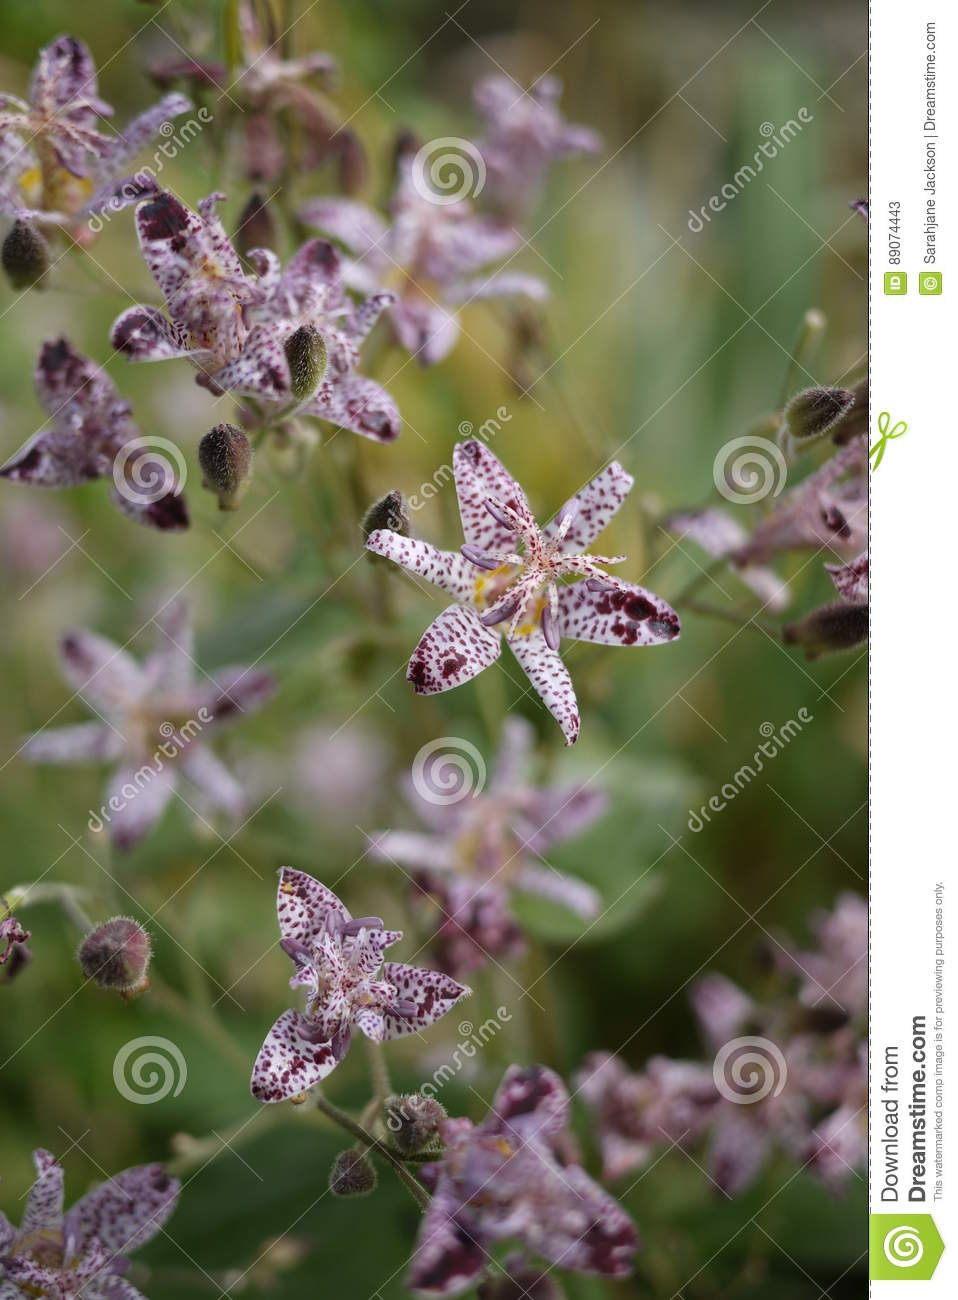 Purple and white small toad tiger lily flowers stock image image purple and white small toad tiger lily flowers mightylinksfo